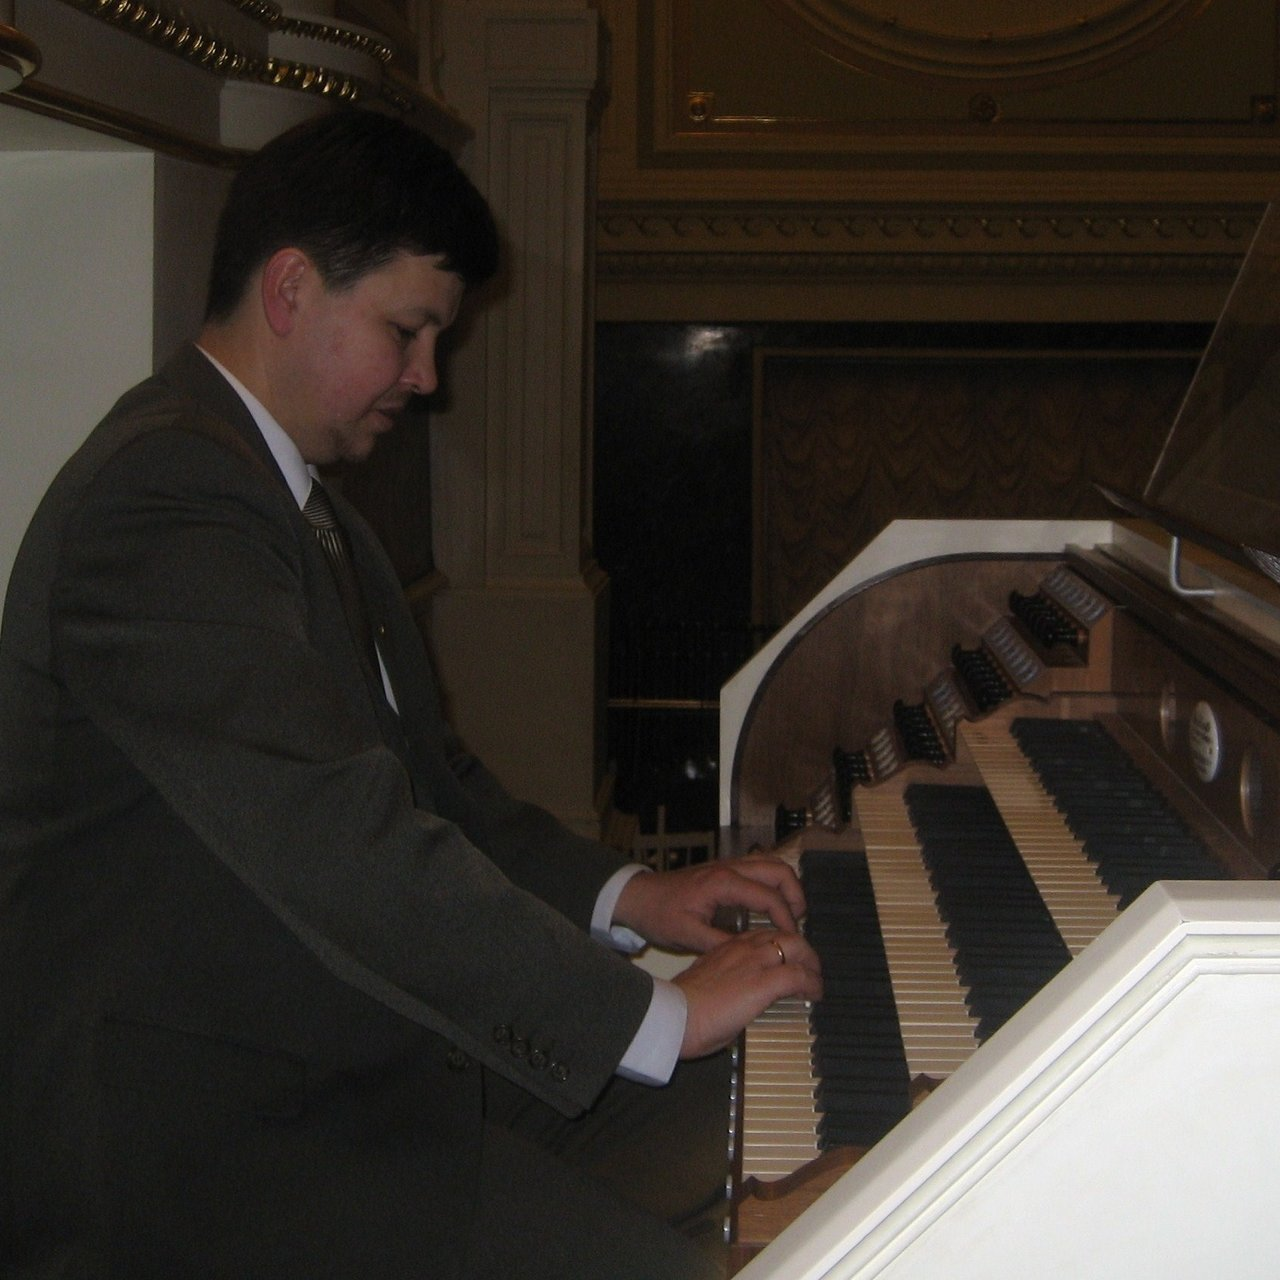 Organ of the Viennese Classicism Era (Live from St. Petersburg Academic Capella, February 25, 2010)